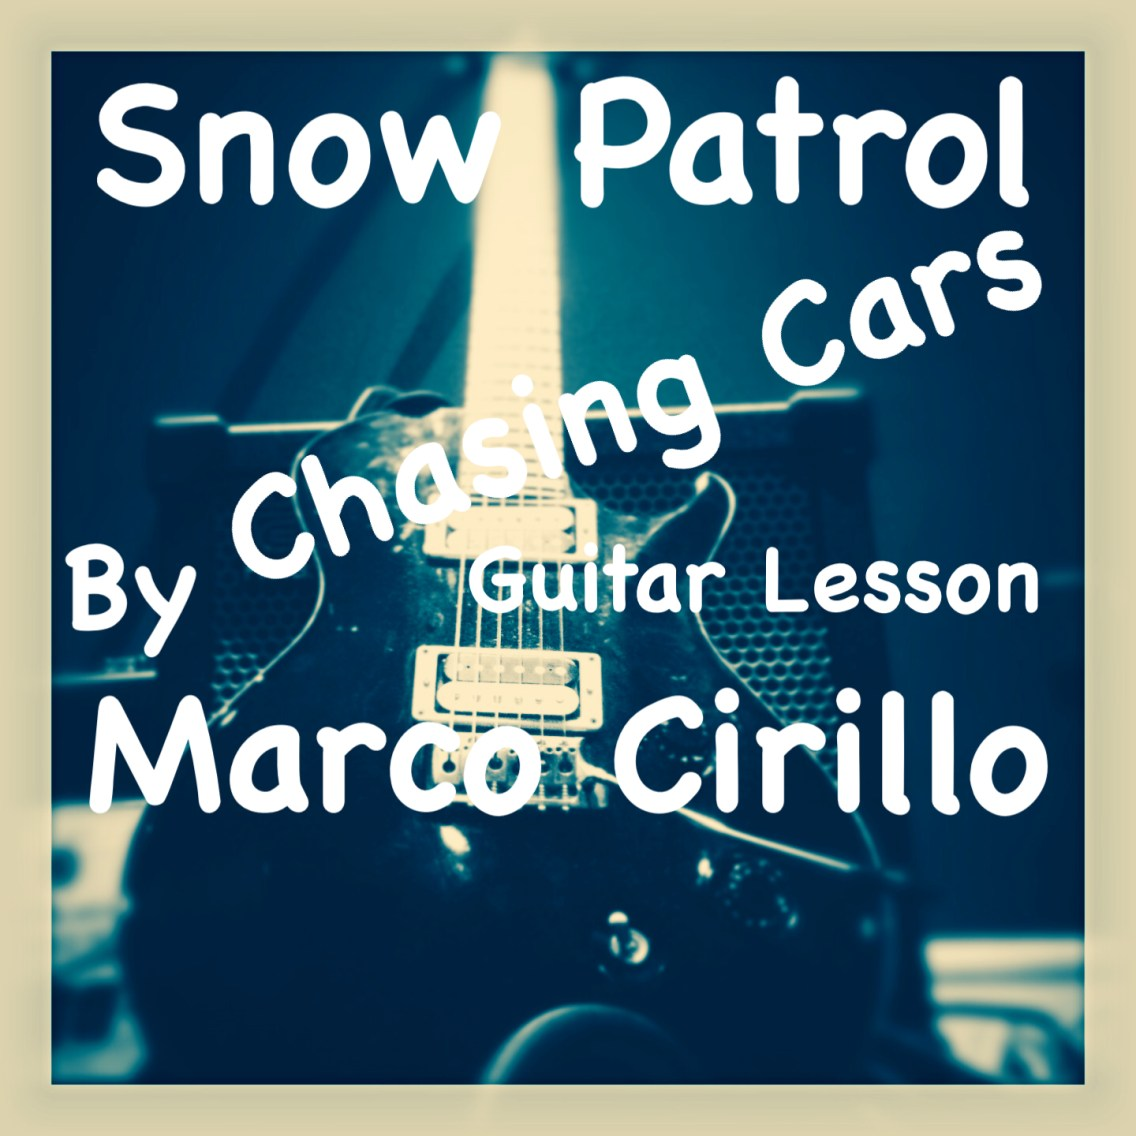 Snow Patrol Chasing Cars Guitar Lesson Chords and Tab - Free Online Guitar Lesson by Marco Cirillo. Learn the Songs you Love !!!